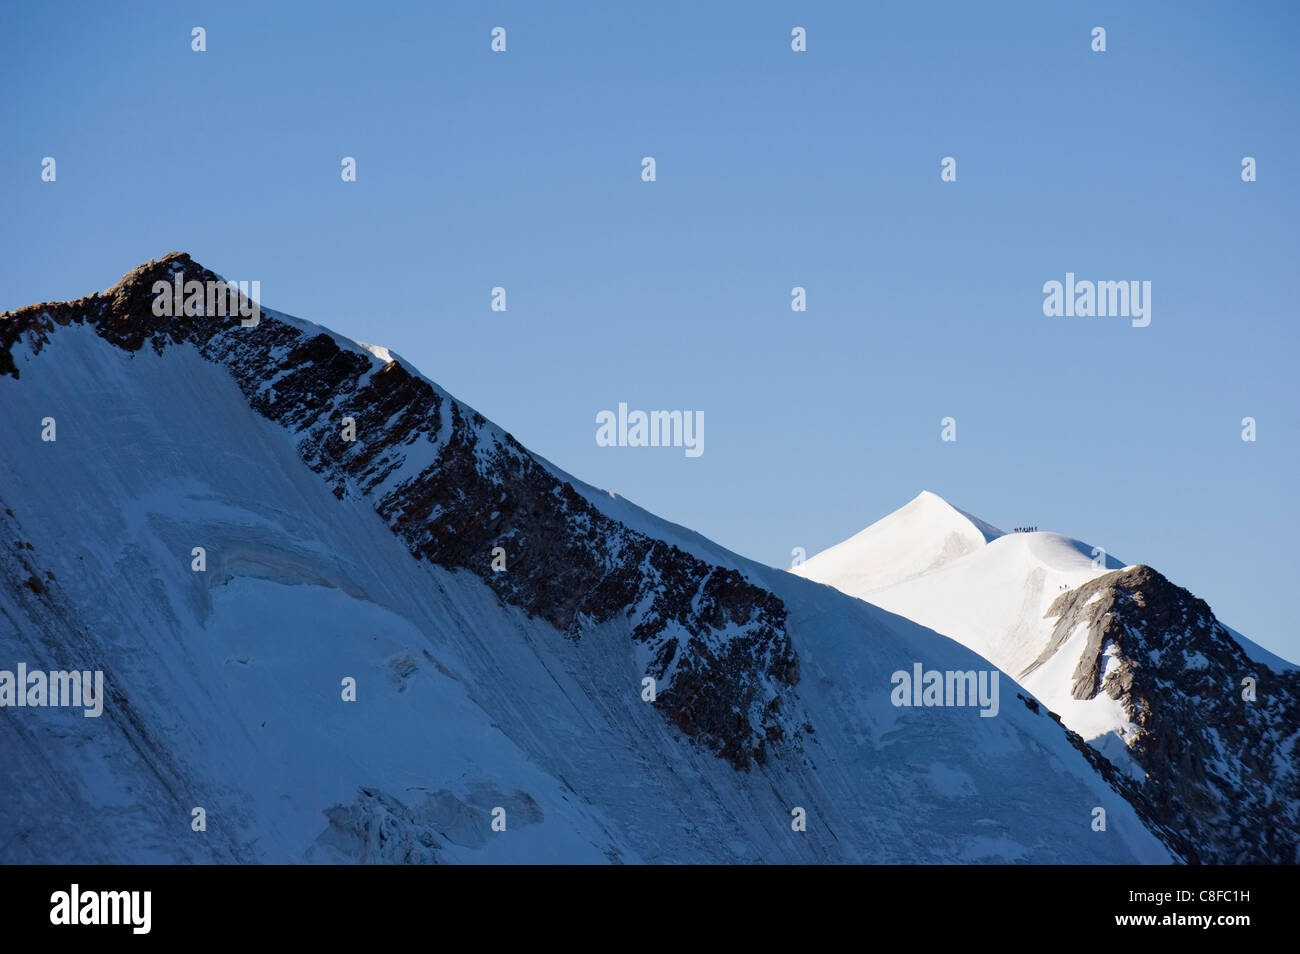 Dome de Miage, French Alps, France - Stock Image